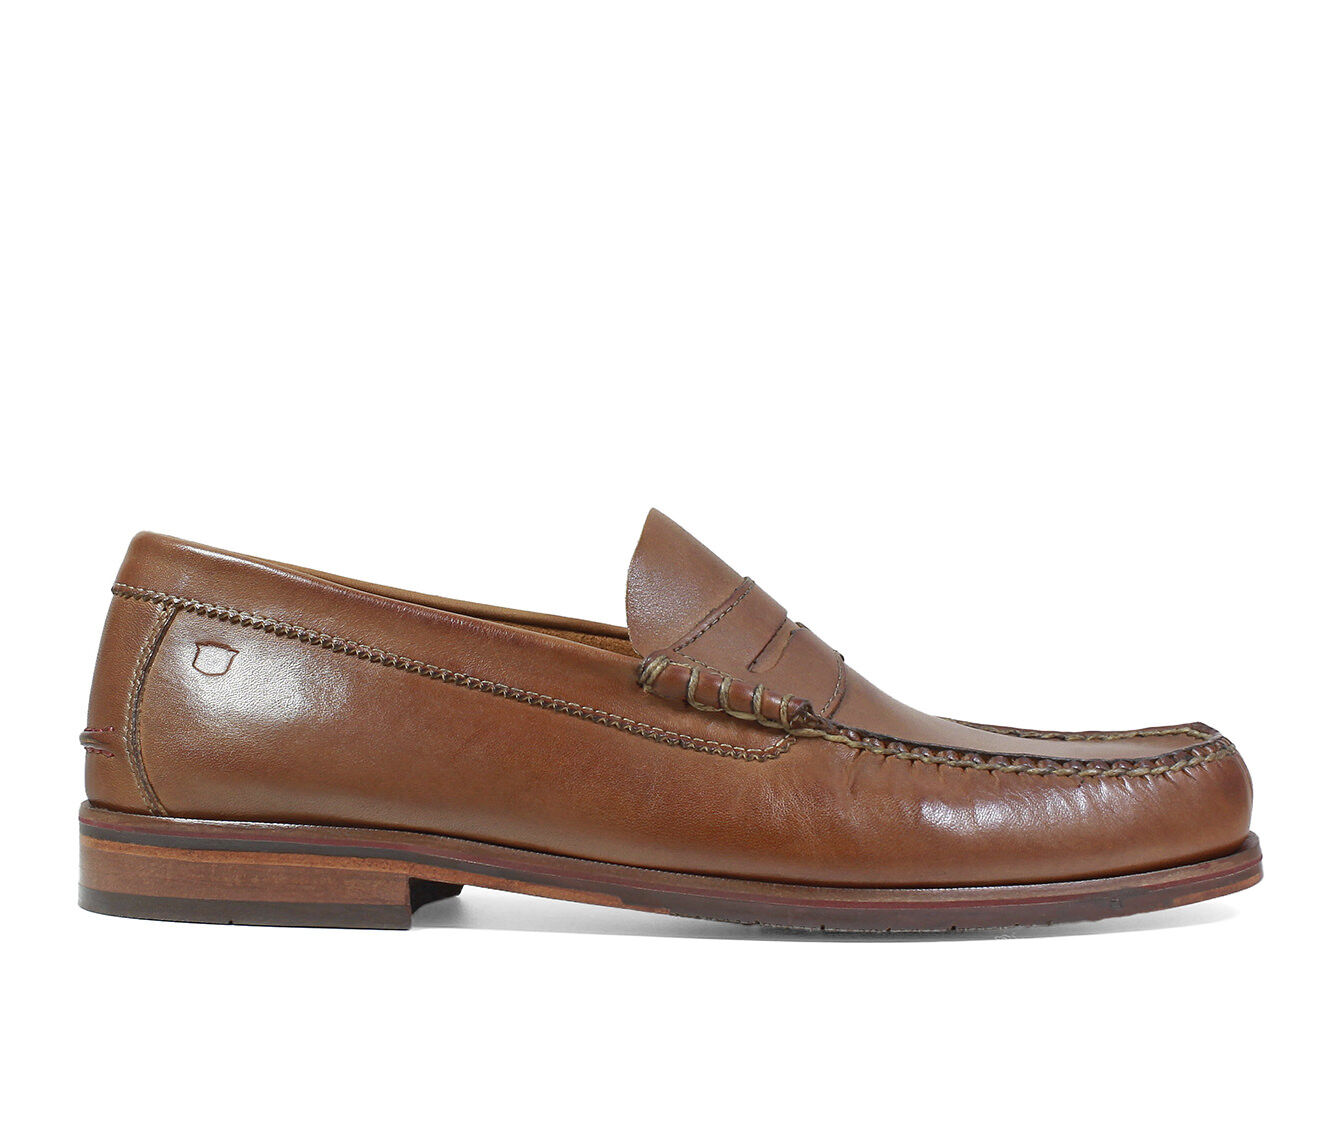 Men's Florsheim Heads Up Penny Loafer Dress Shoes Cognac